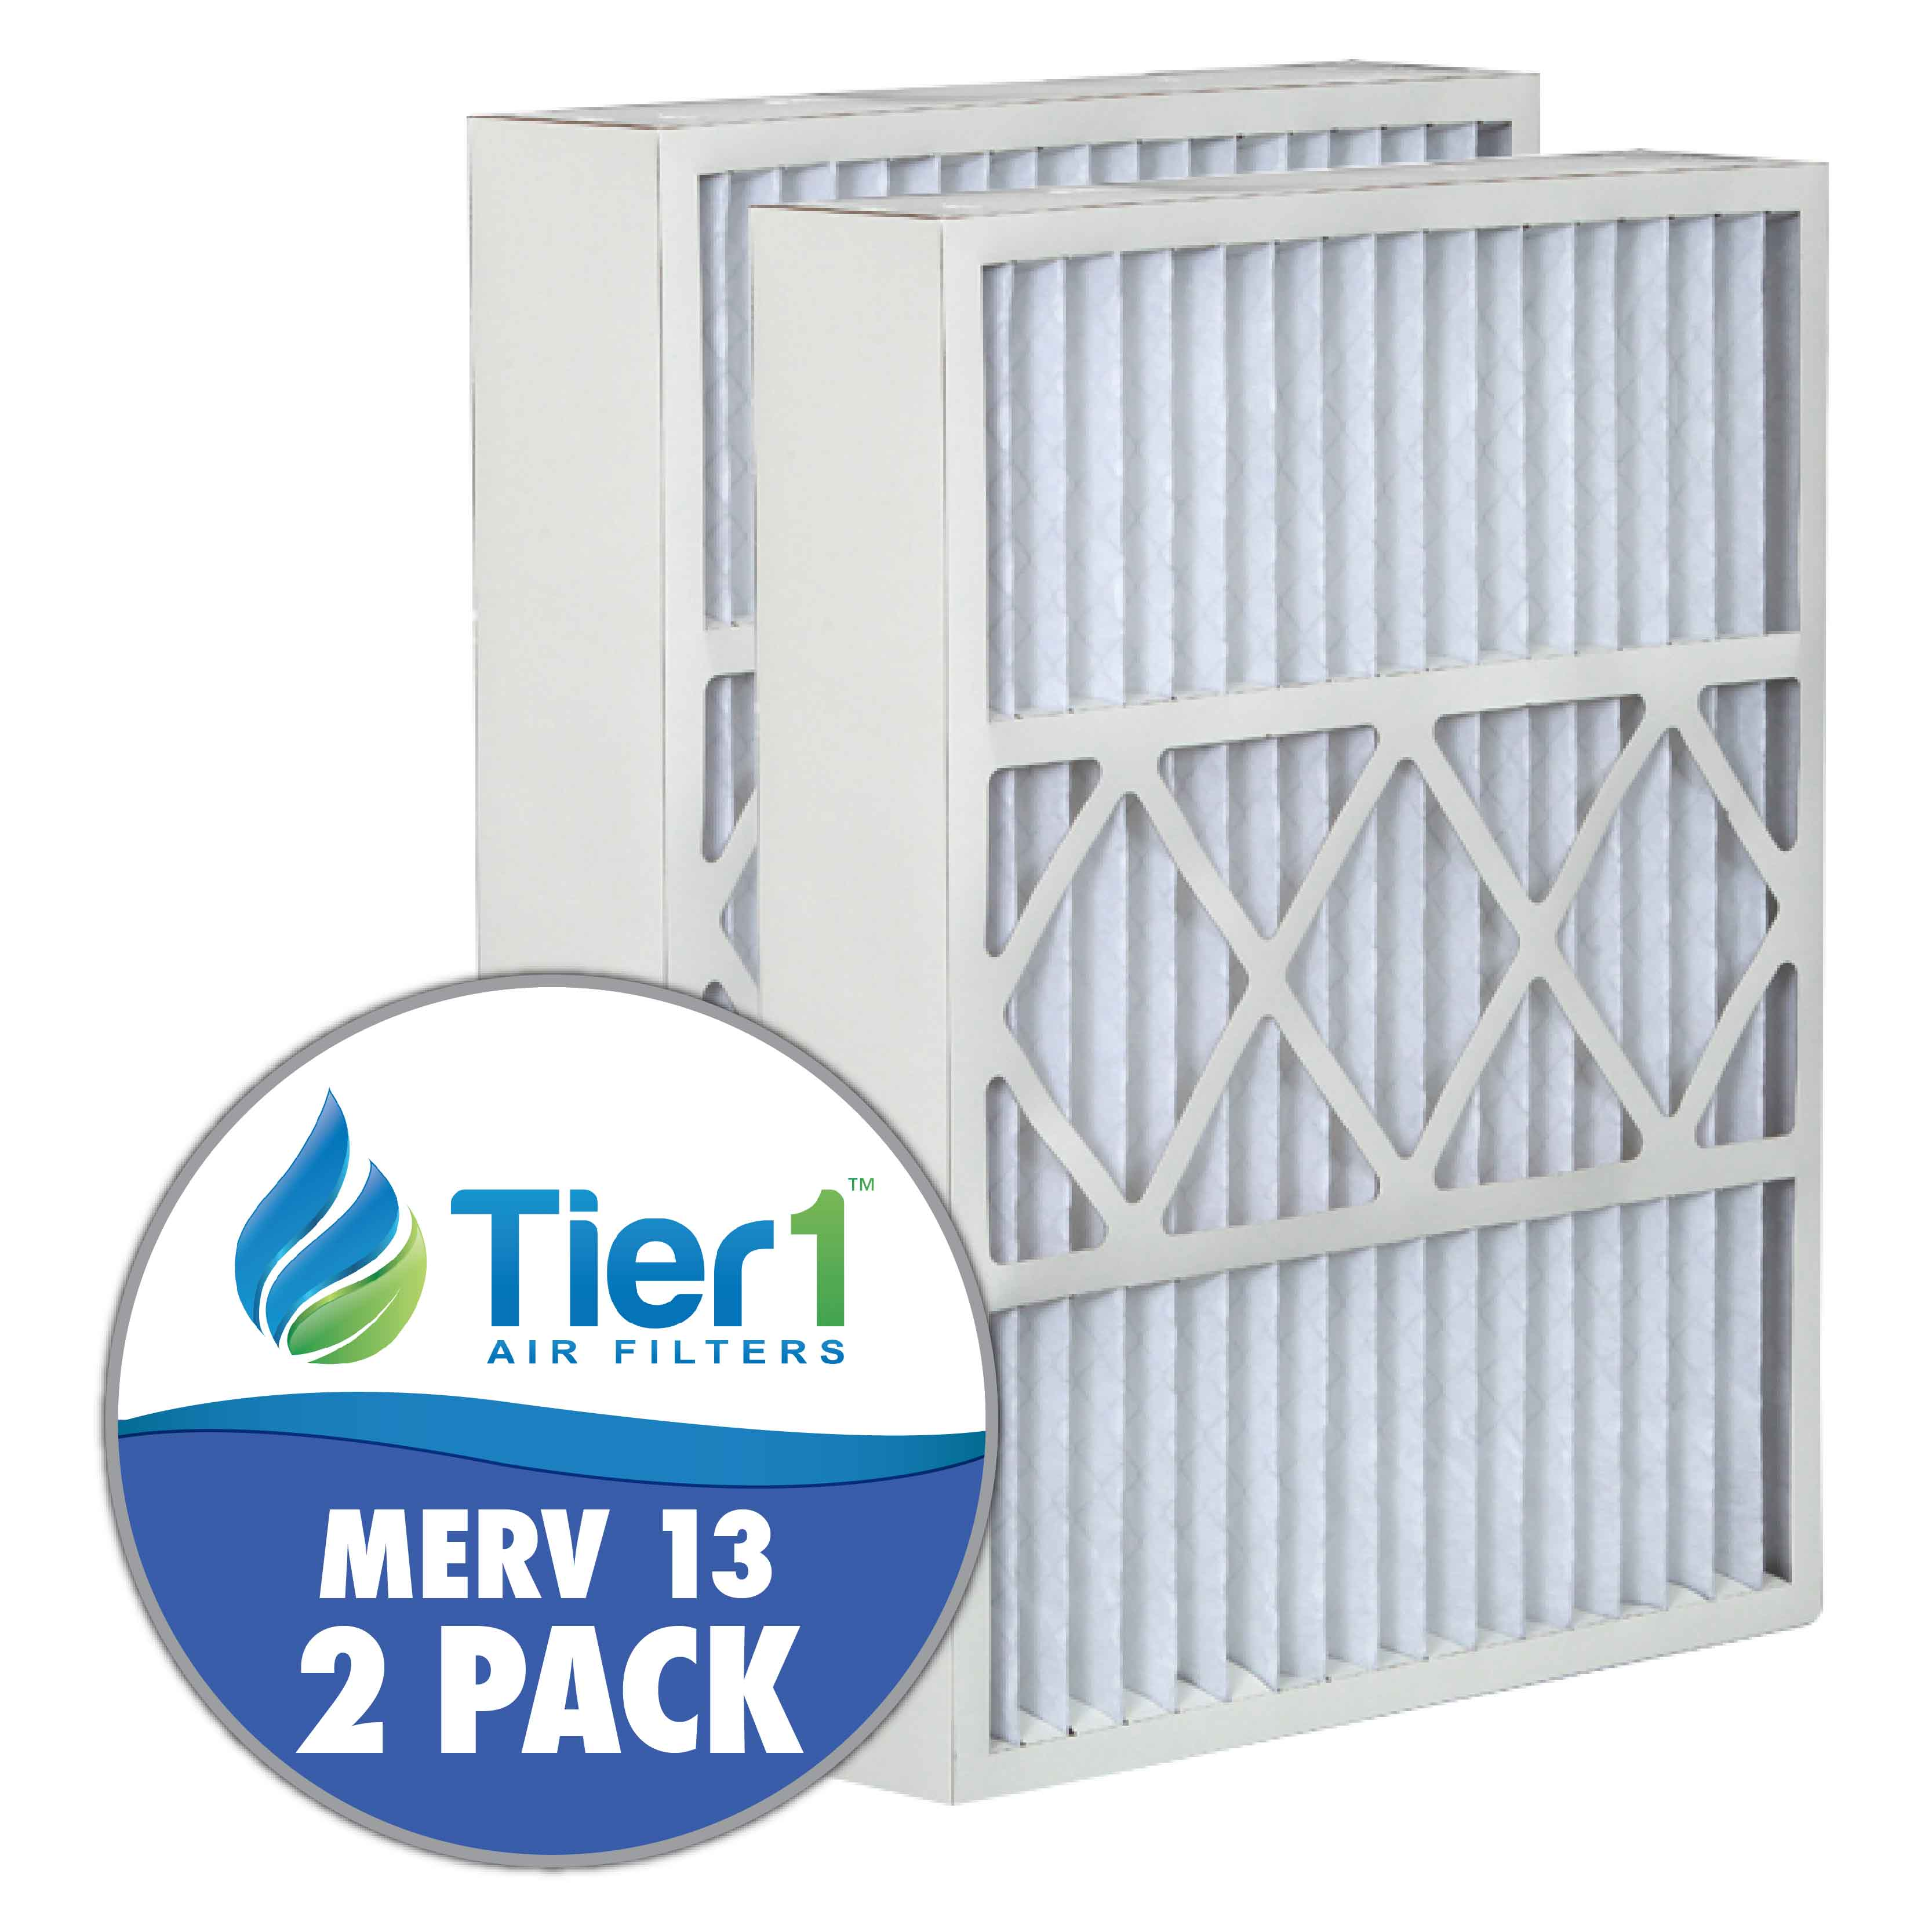 Tier1 brand replacement for Carrier FILCCCAR0016 - 16 x 25 x 5 - MERV 13 (2-Pack) TIER1-DPFWG16X25X5M13